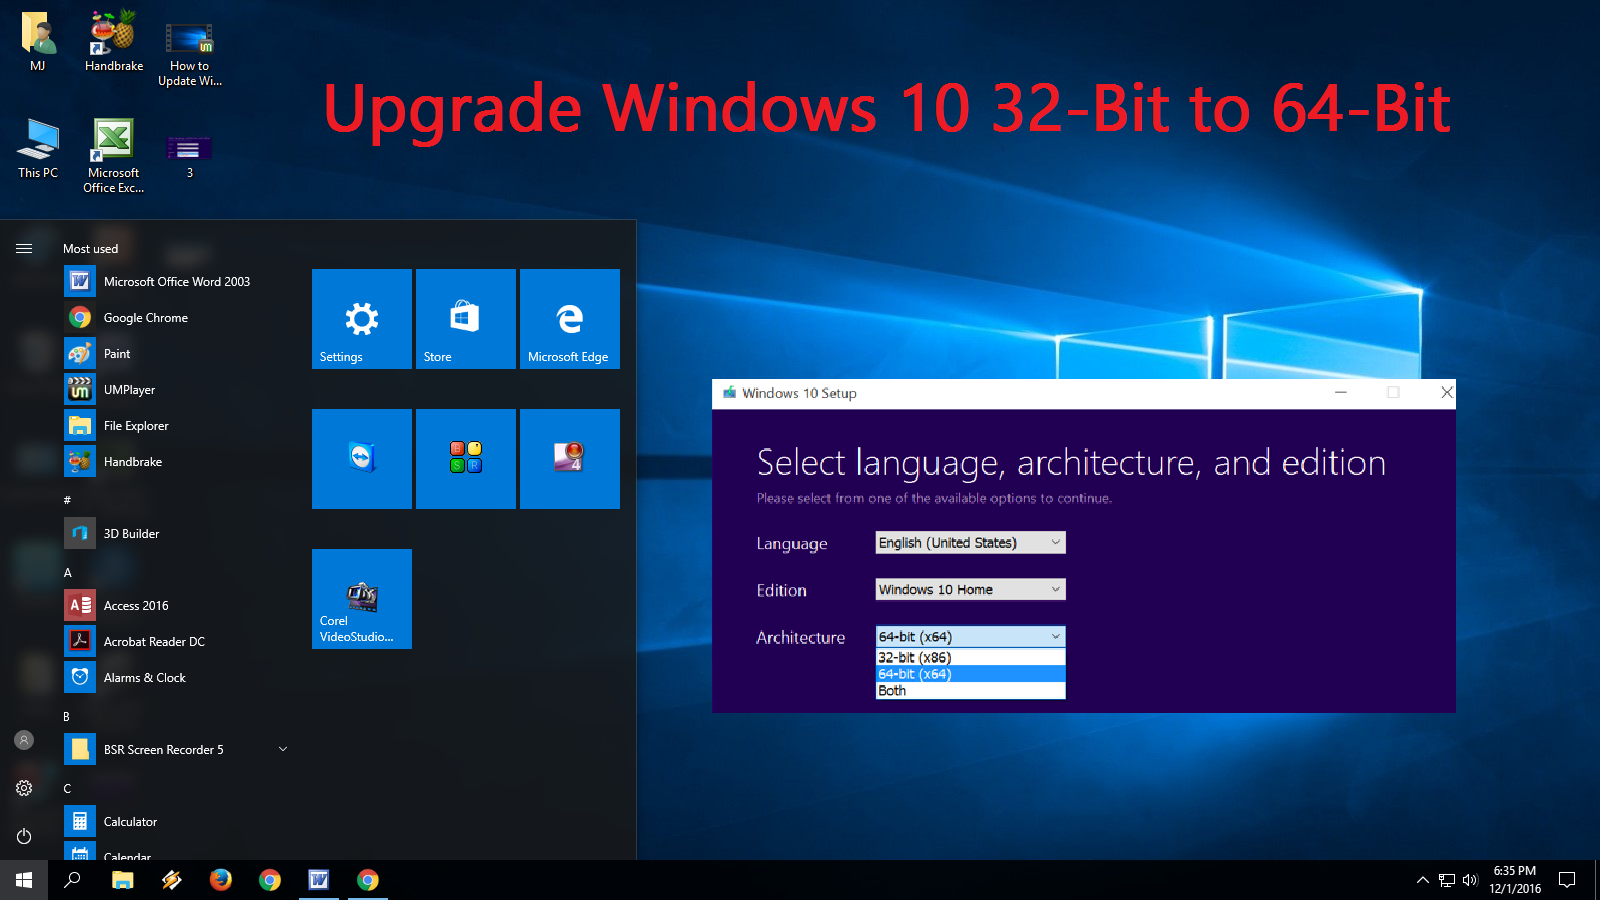 Learn New Things: How to Upgrade Windows 10 32-Bit to 64-Bit (Free)